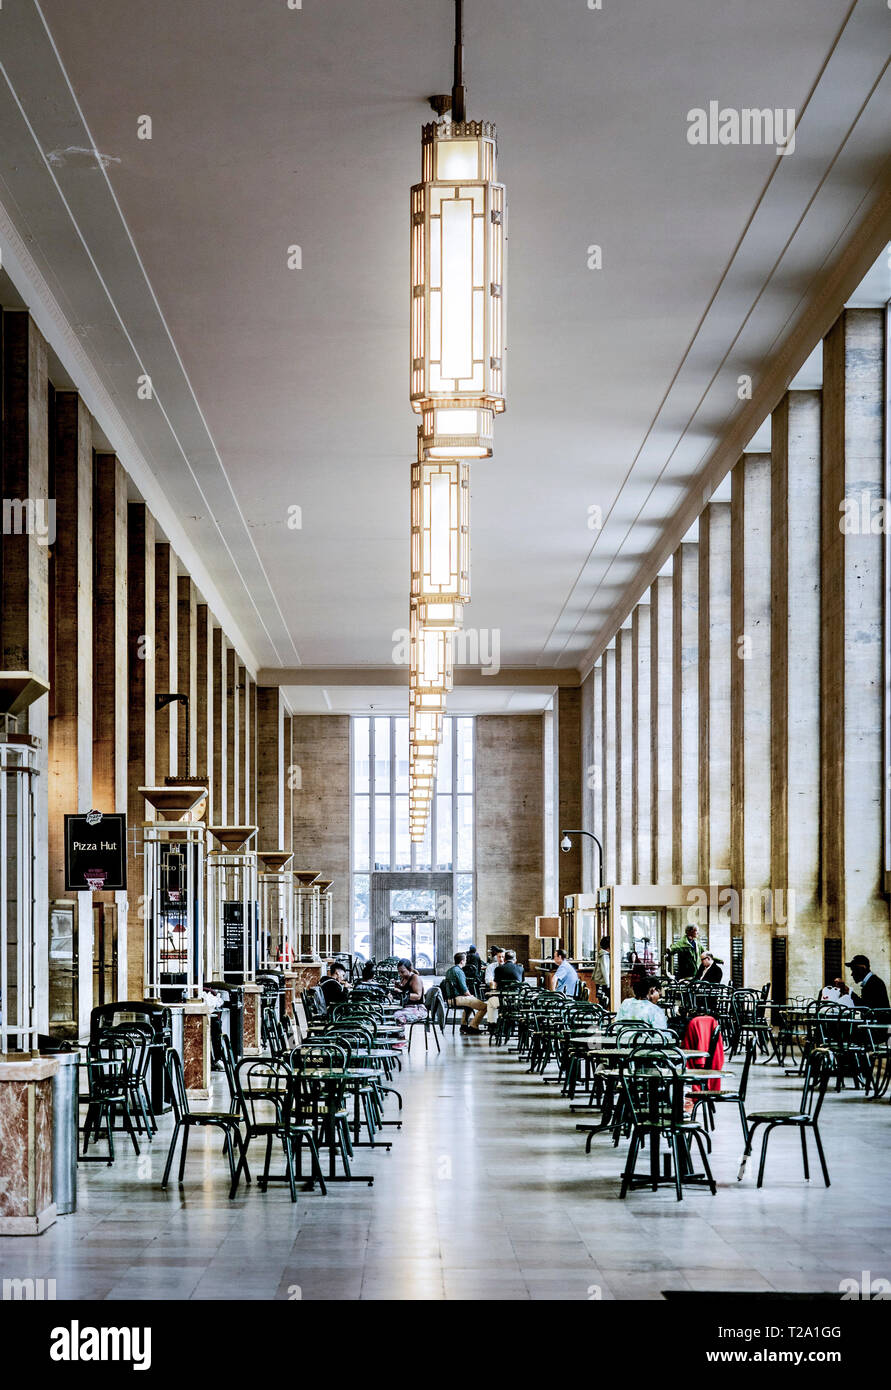 center city Philadelphia, Pennsylvania, eating area, train station, 30th street train station - Stock Image